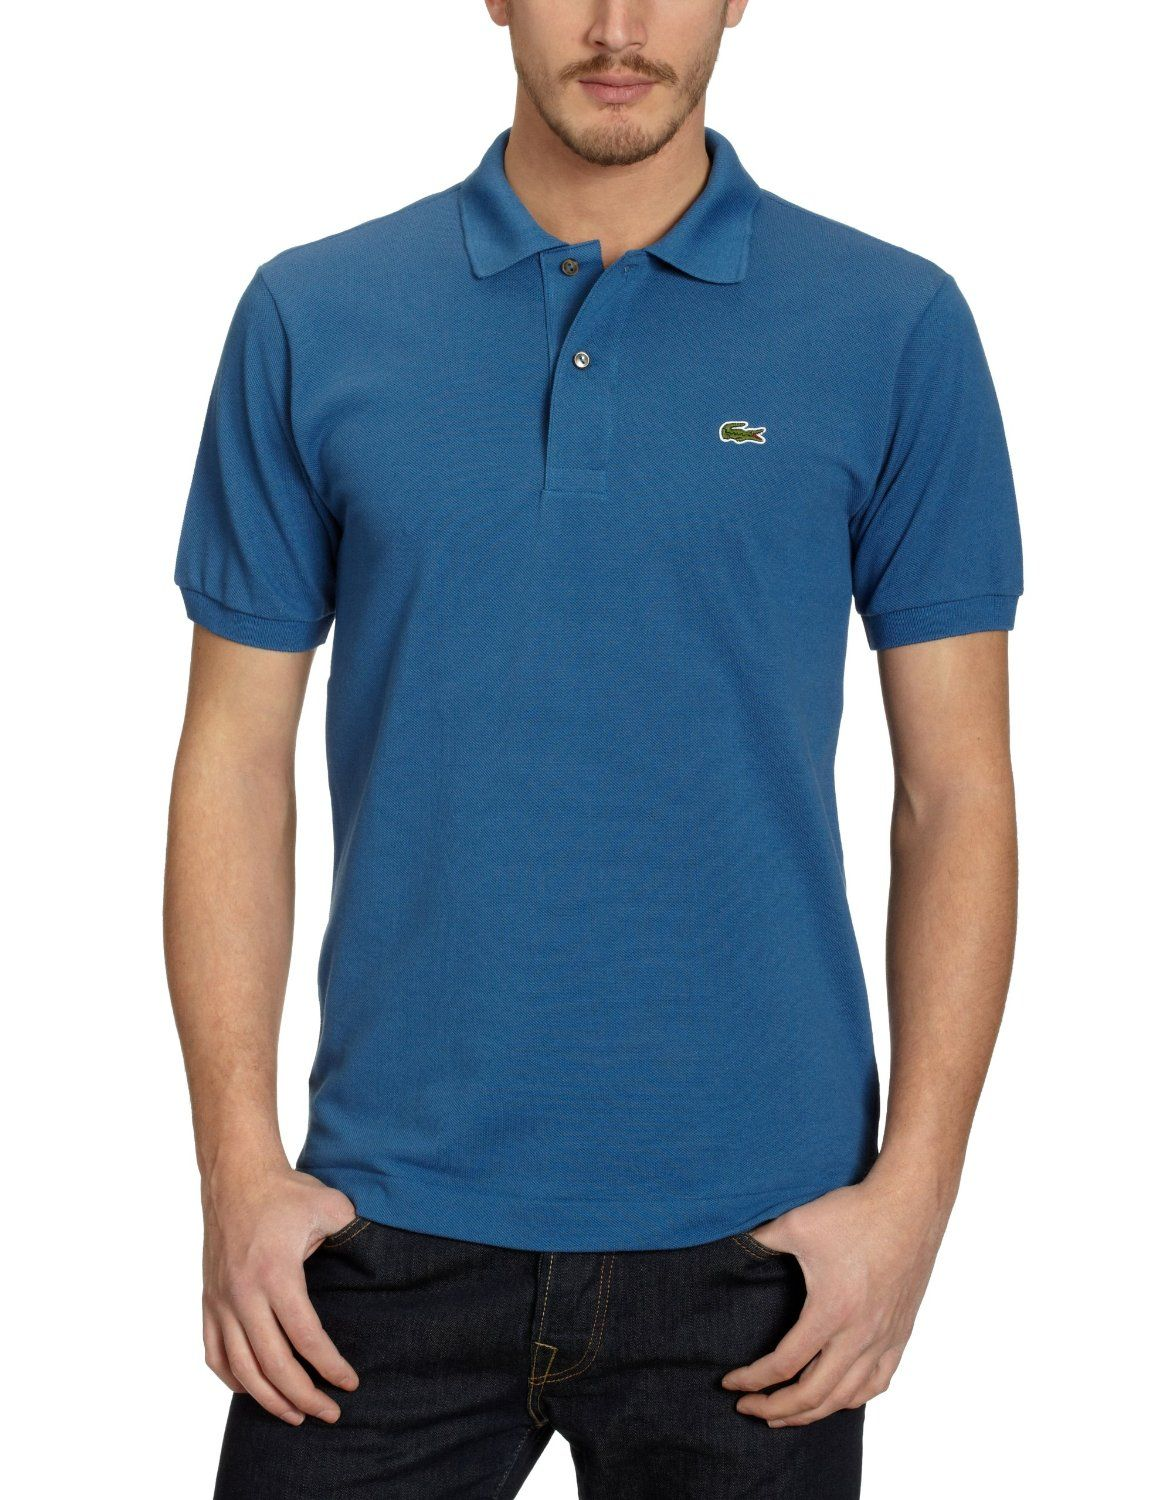 USA billig verkaufen hohes Ansehen besondere Auswahl an Blue Short Sleeve Lacoste Polo: Amazon.co.uk: Clothing | T ...